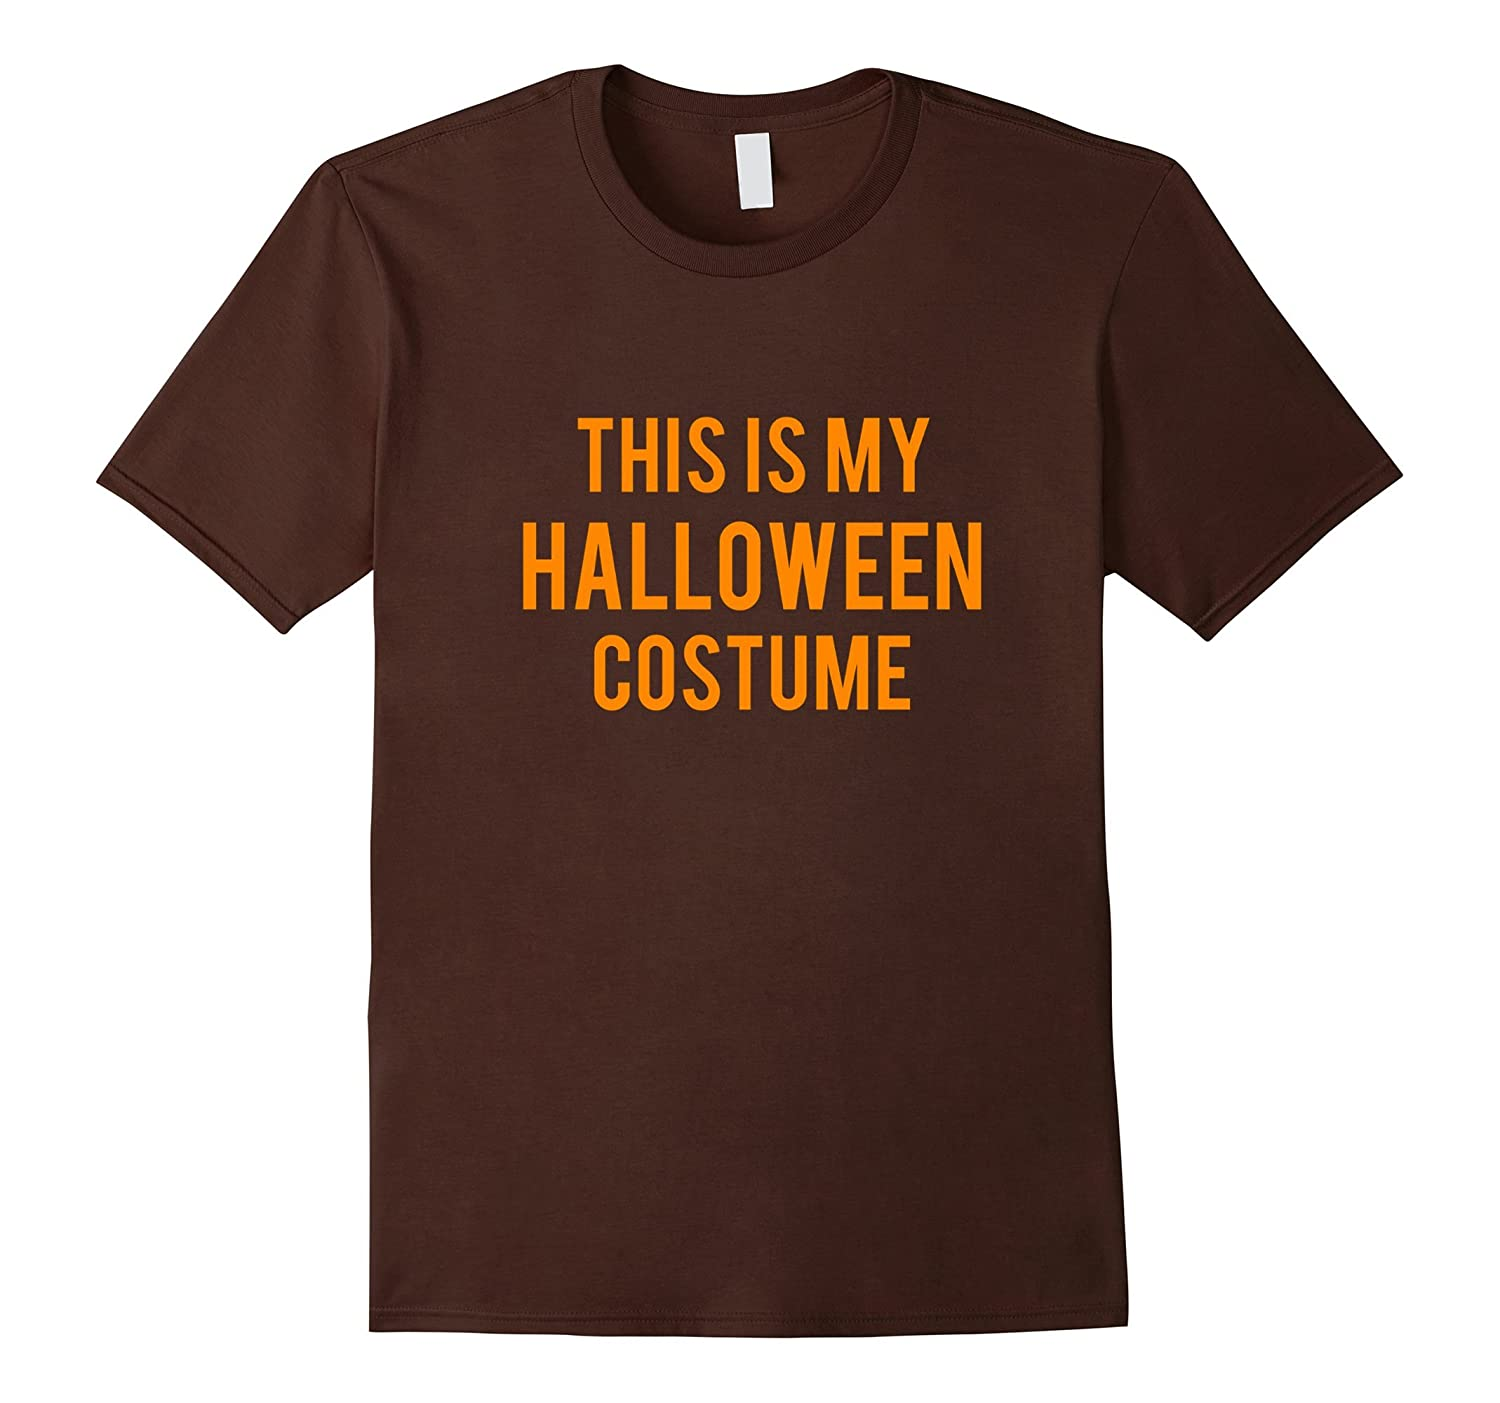 OFFICIAL This Is My Halloween Costume T-Shirt Kids Men Women-T-Shirt